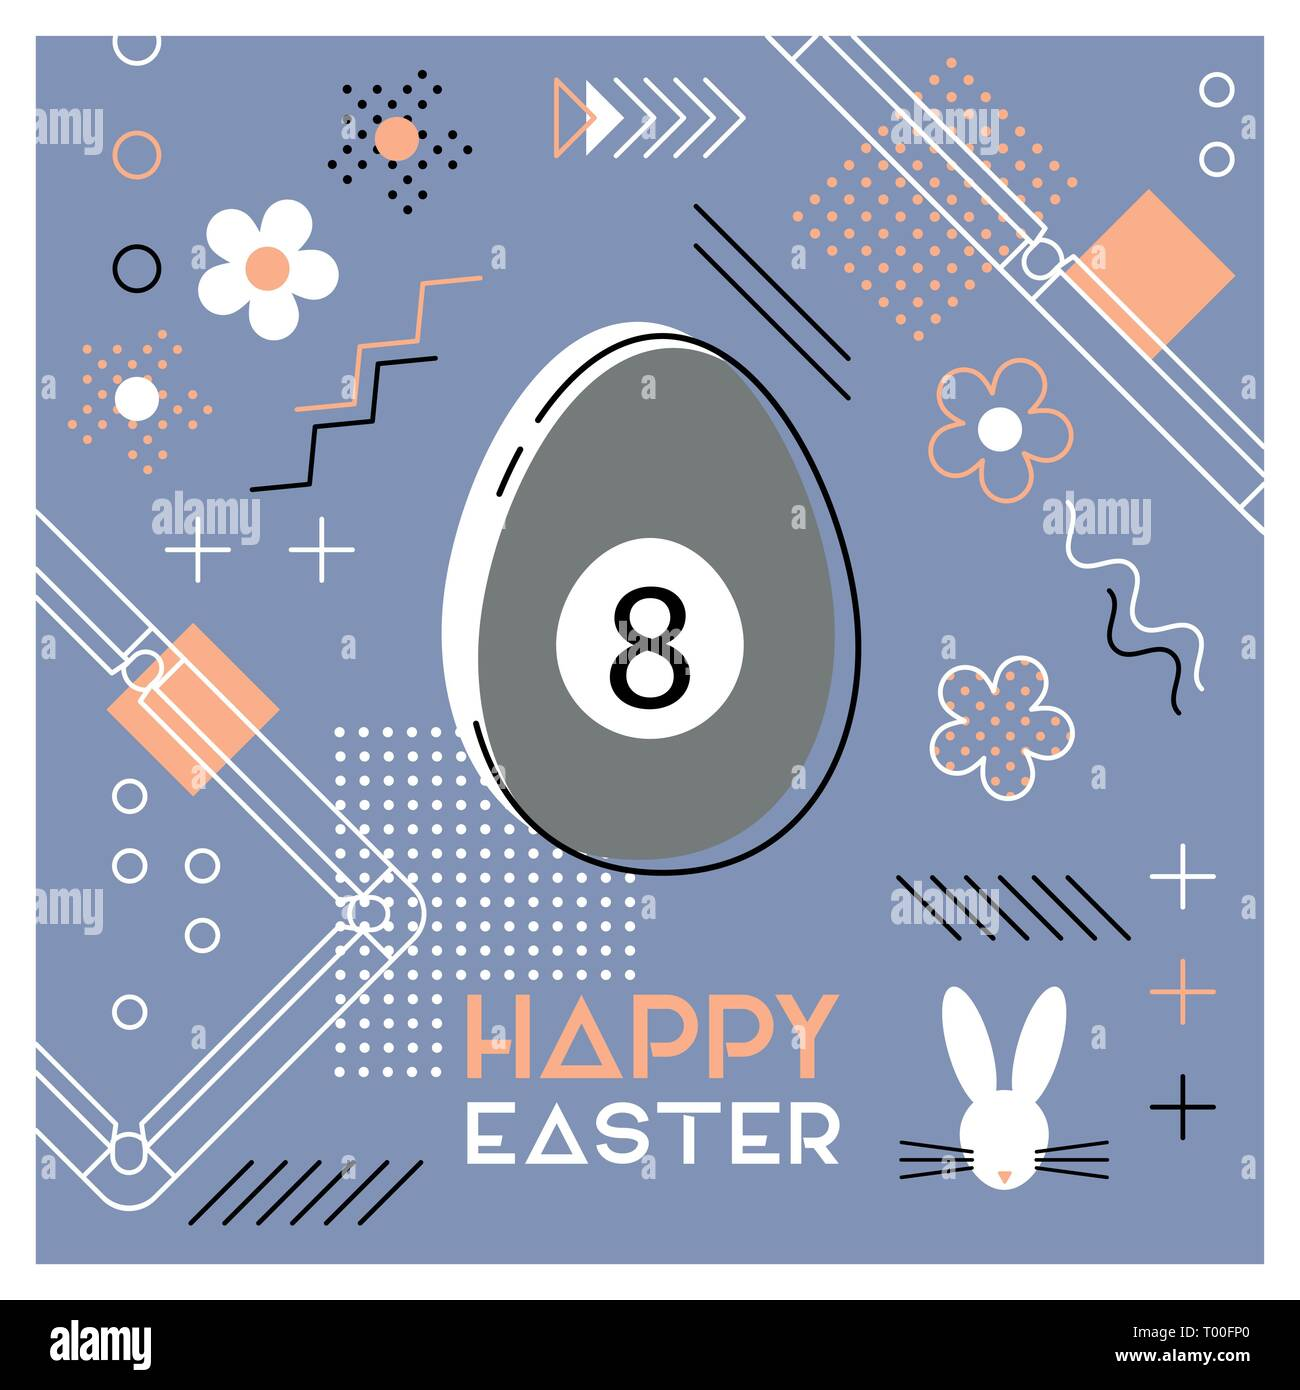 Happy Easter. Greeting card with Easter egg as a billiard ball. Abstract Memphis design. Vector illustration. - Stock Vector